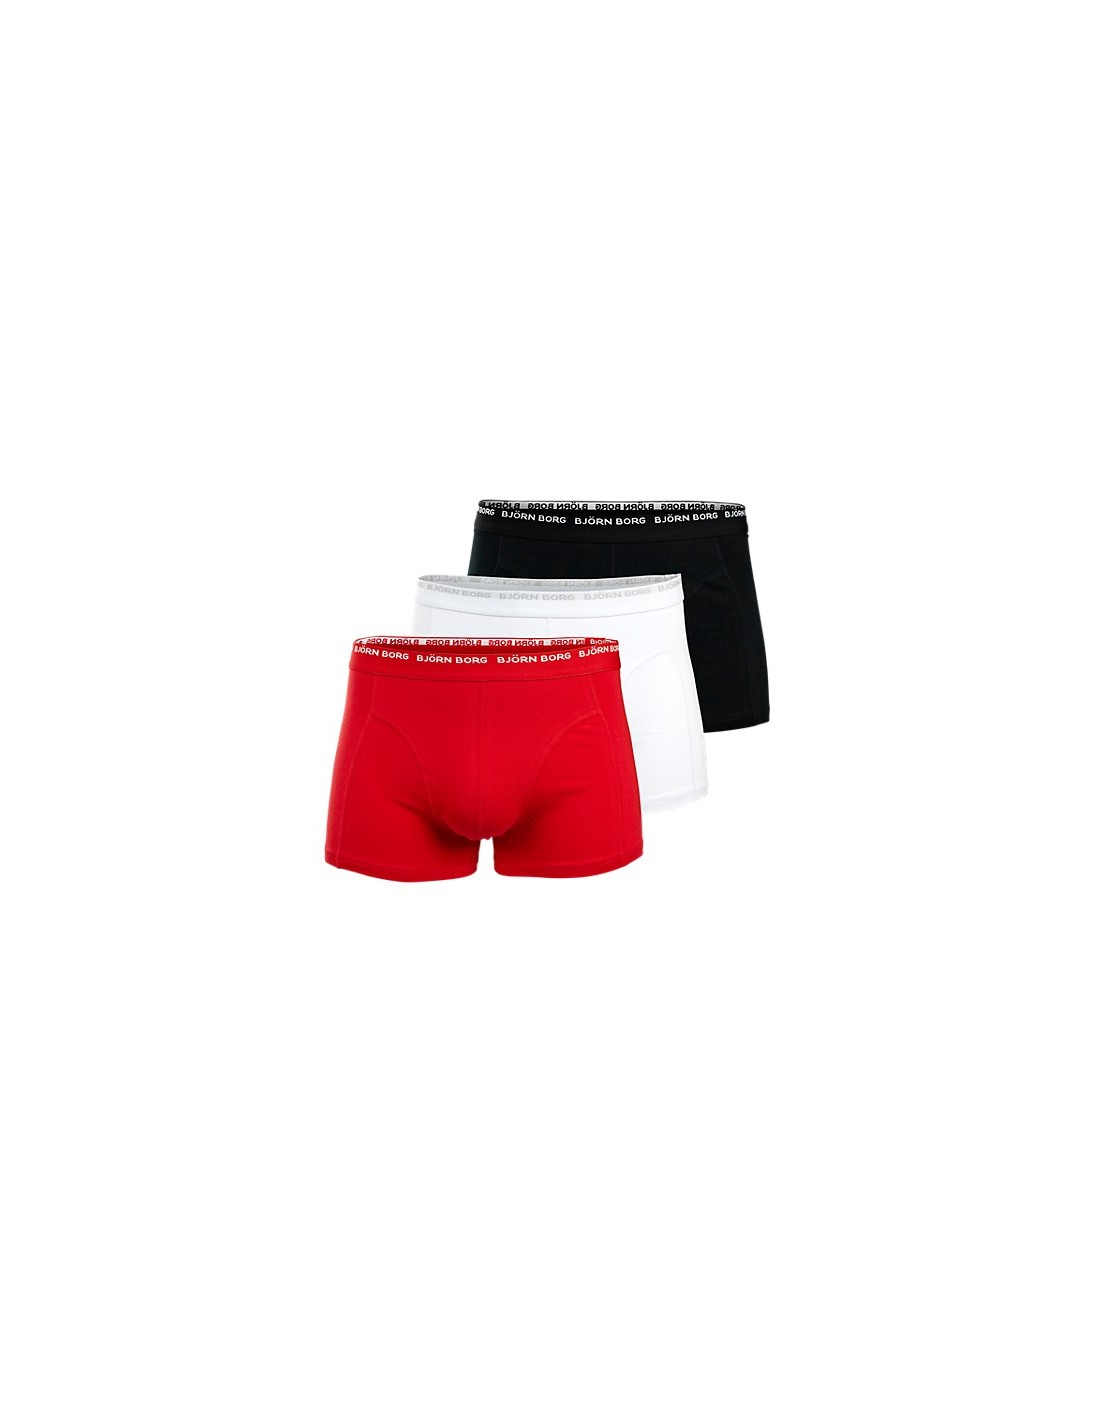 Björn Borg Short Shorts 3Pack 3 To Go Black white red ...